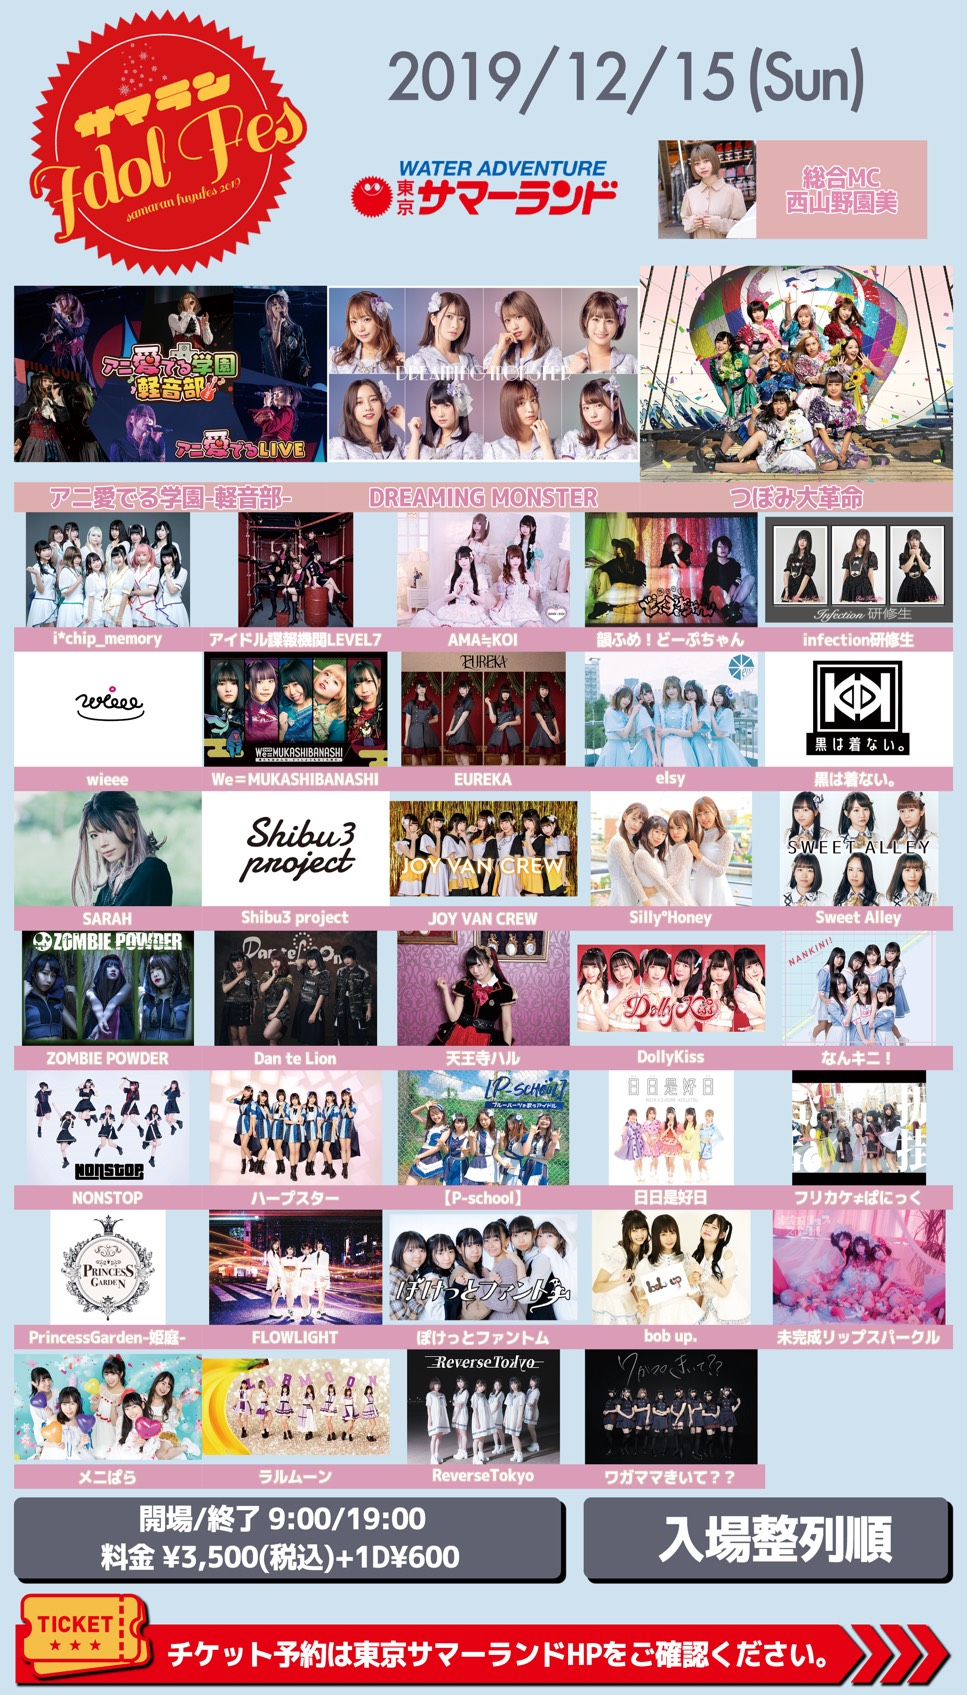 Silly°Honey・工藤聖奈・日下部莉音 12月15日(日)『サマランiDOL FES・PHOTO FES』出演決定!